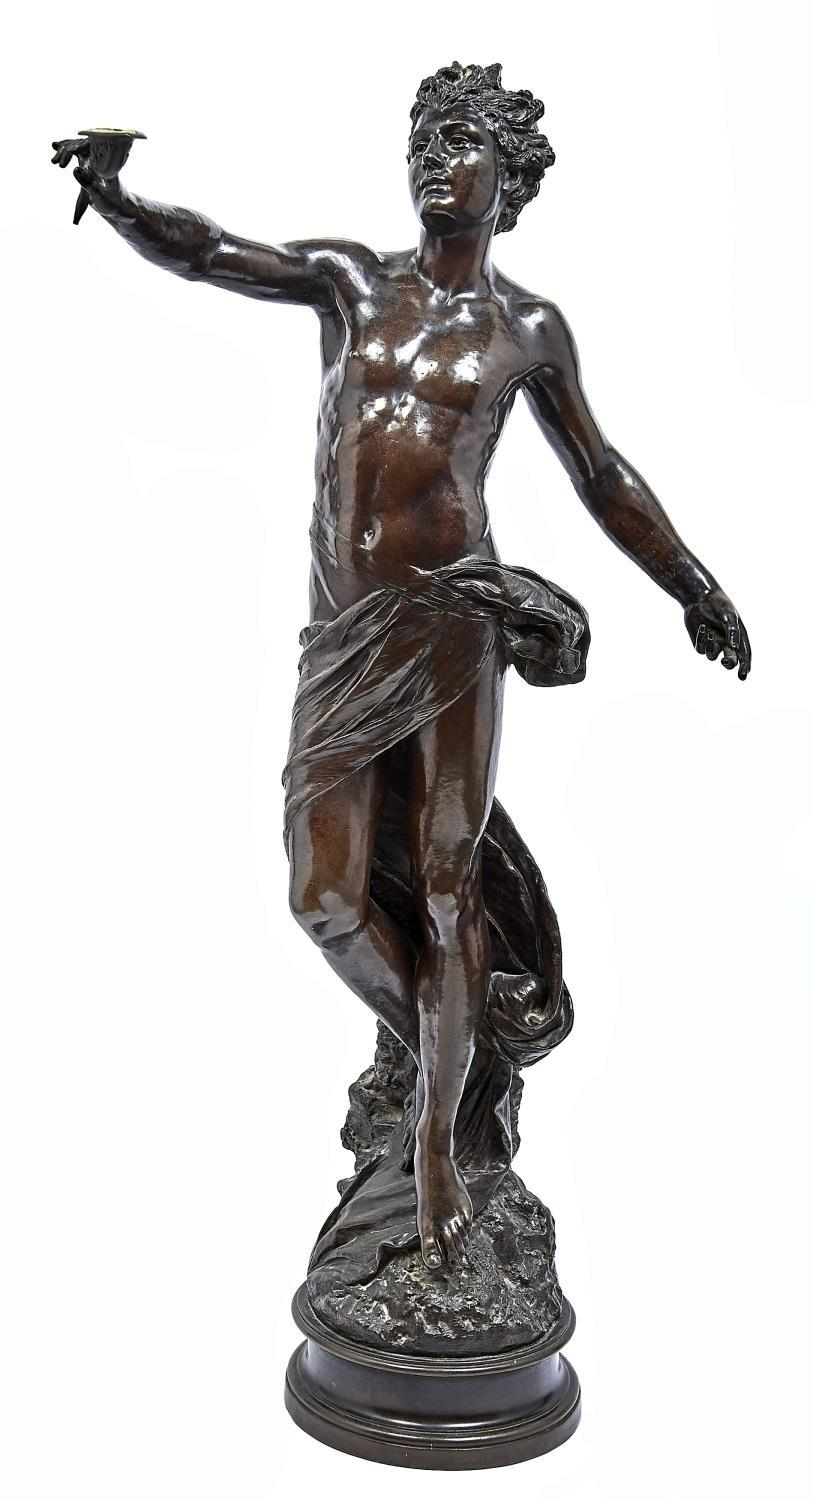 A BRONZED COPPER ELECTROTYPE HALF LIFE SIZED STATUETTE OF A SEMI NAKED YOUTH, 20TH C, HOLDING AN OIL